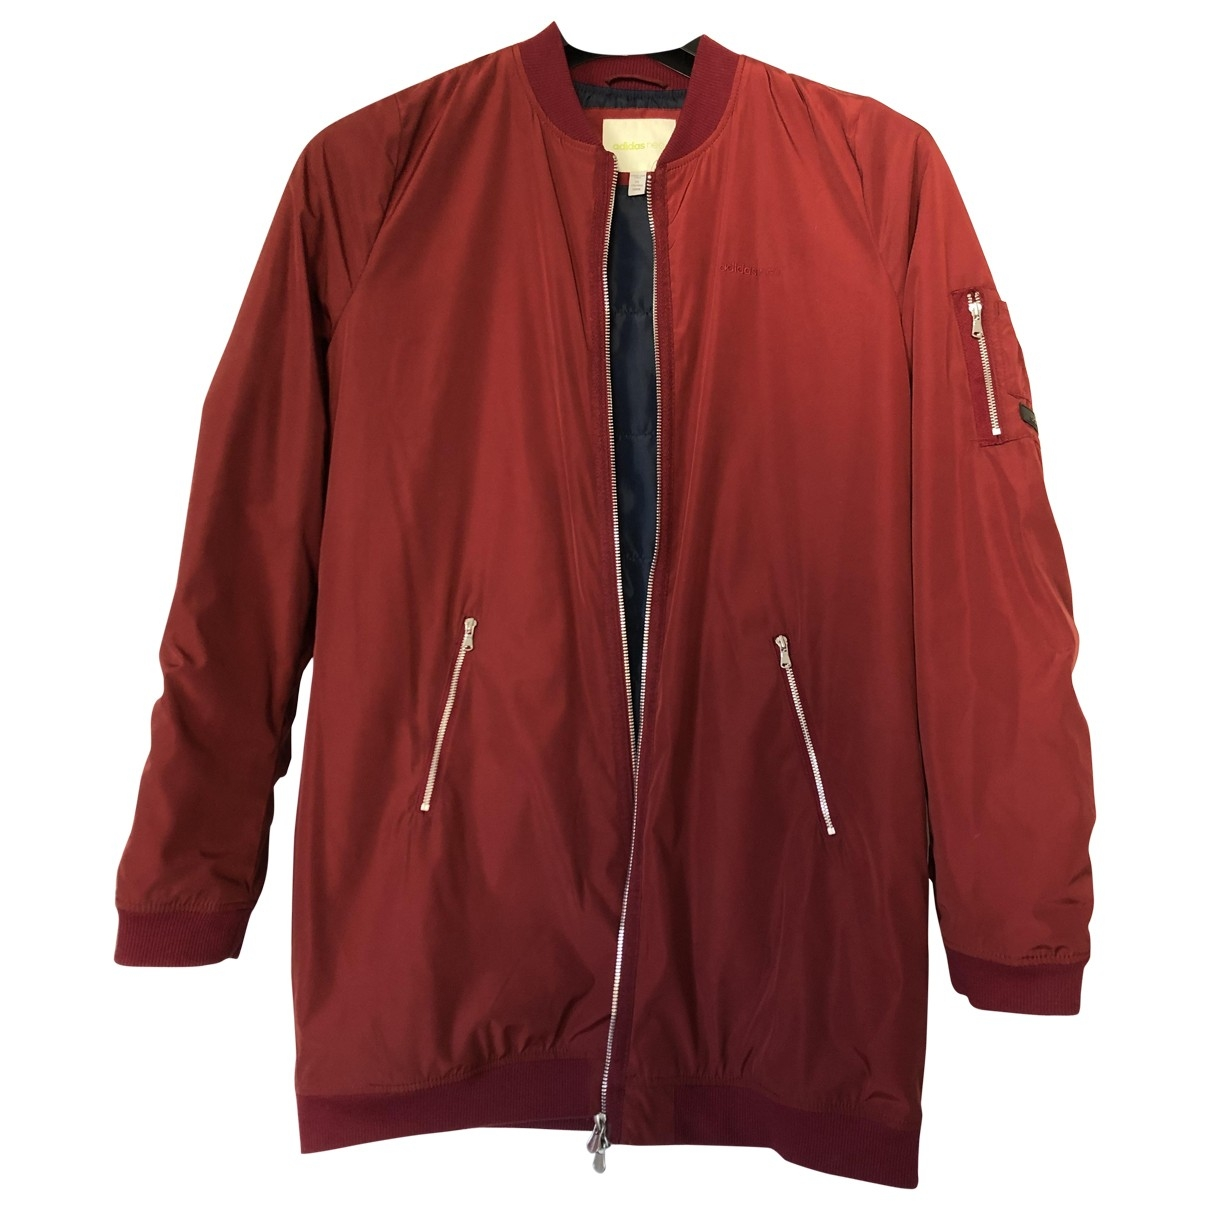 Adidas \N Jacke in  Bordeauxrot Polyester